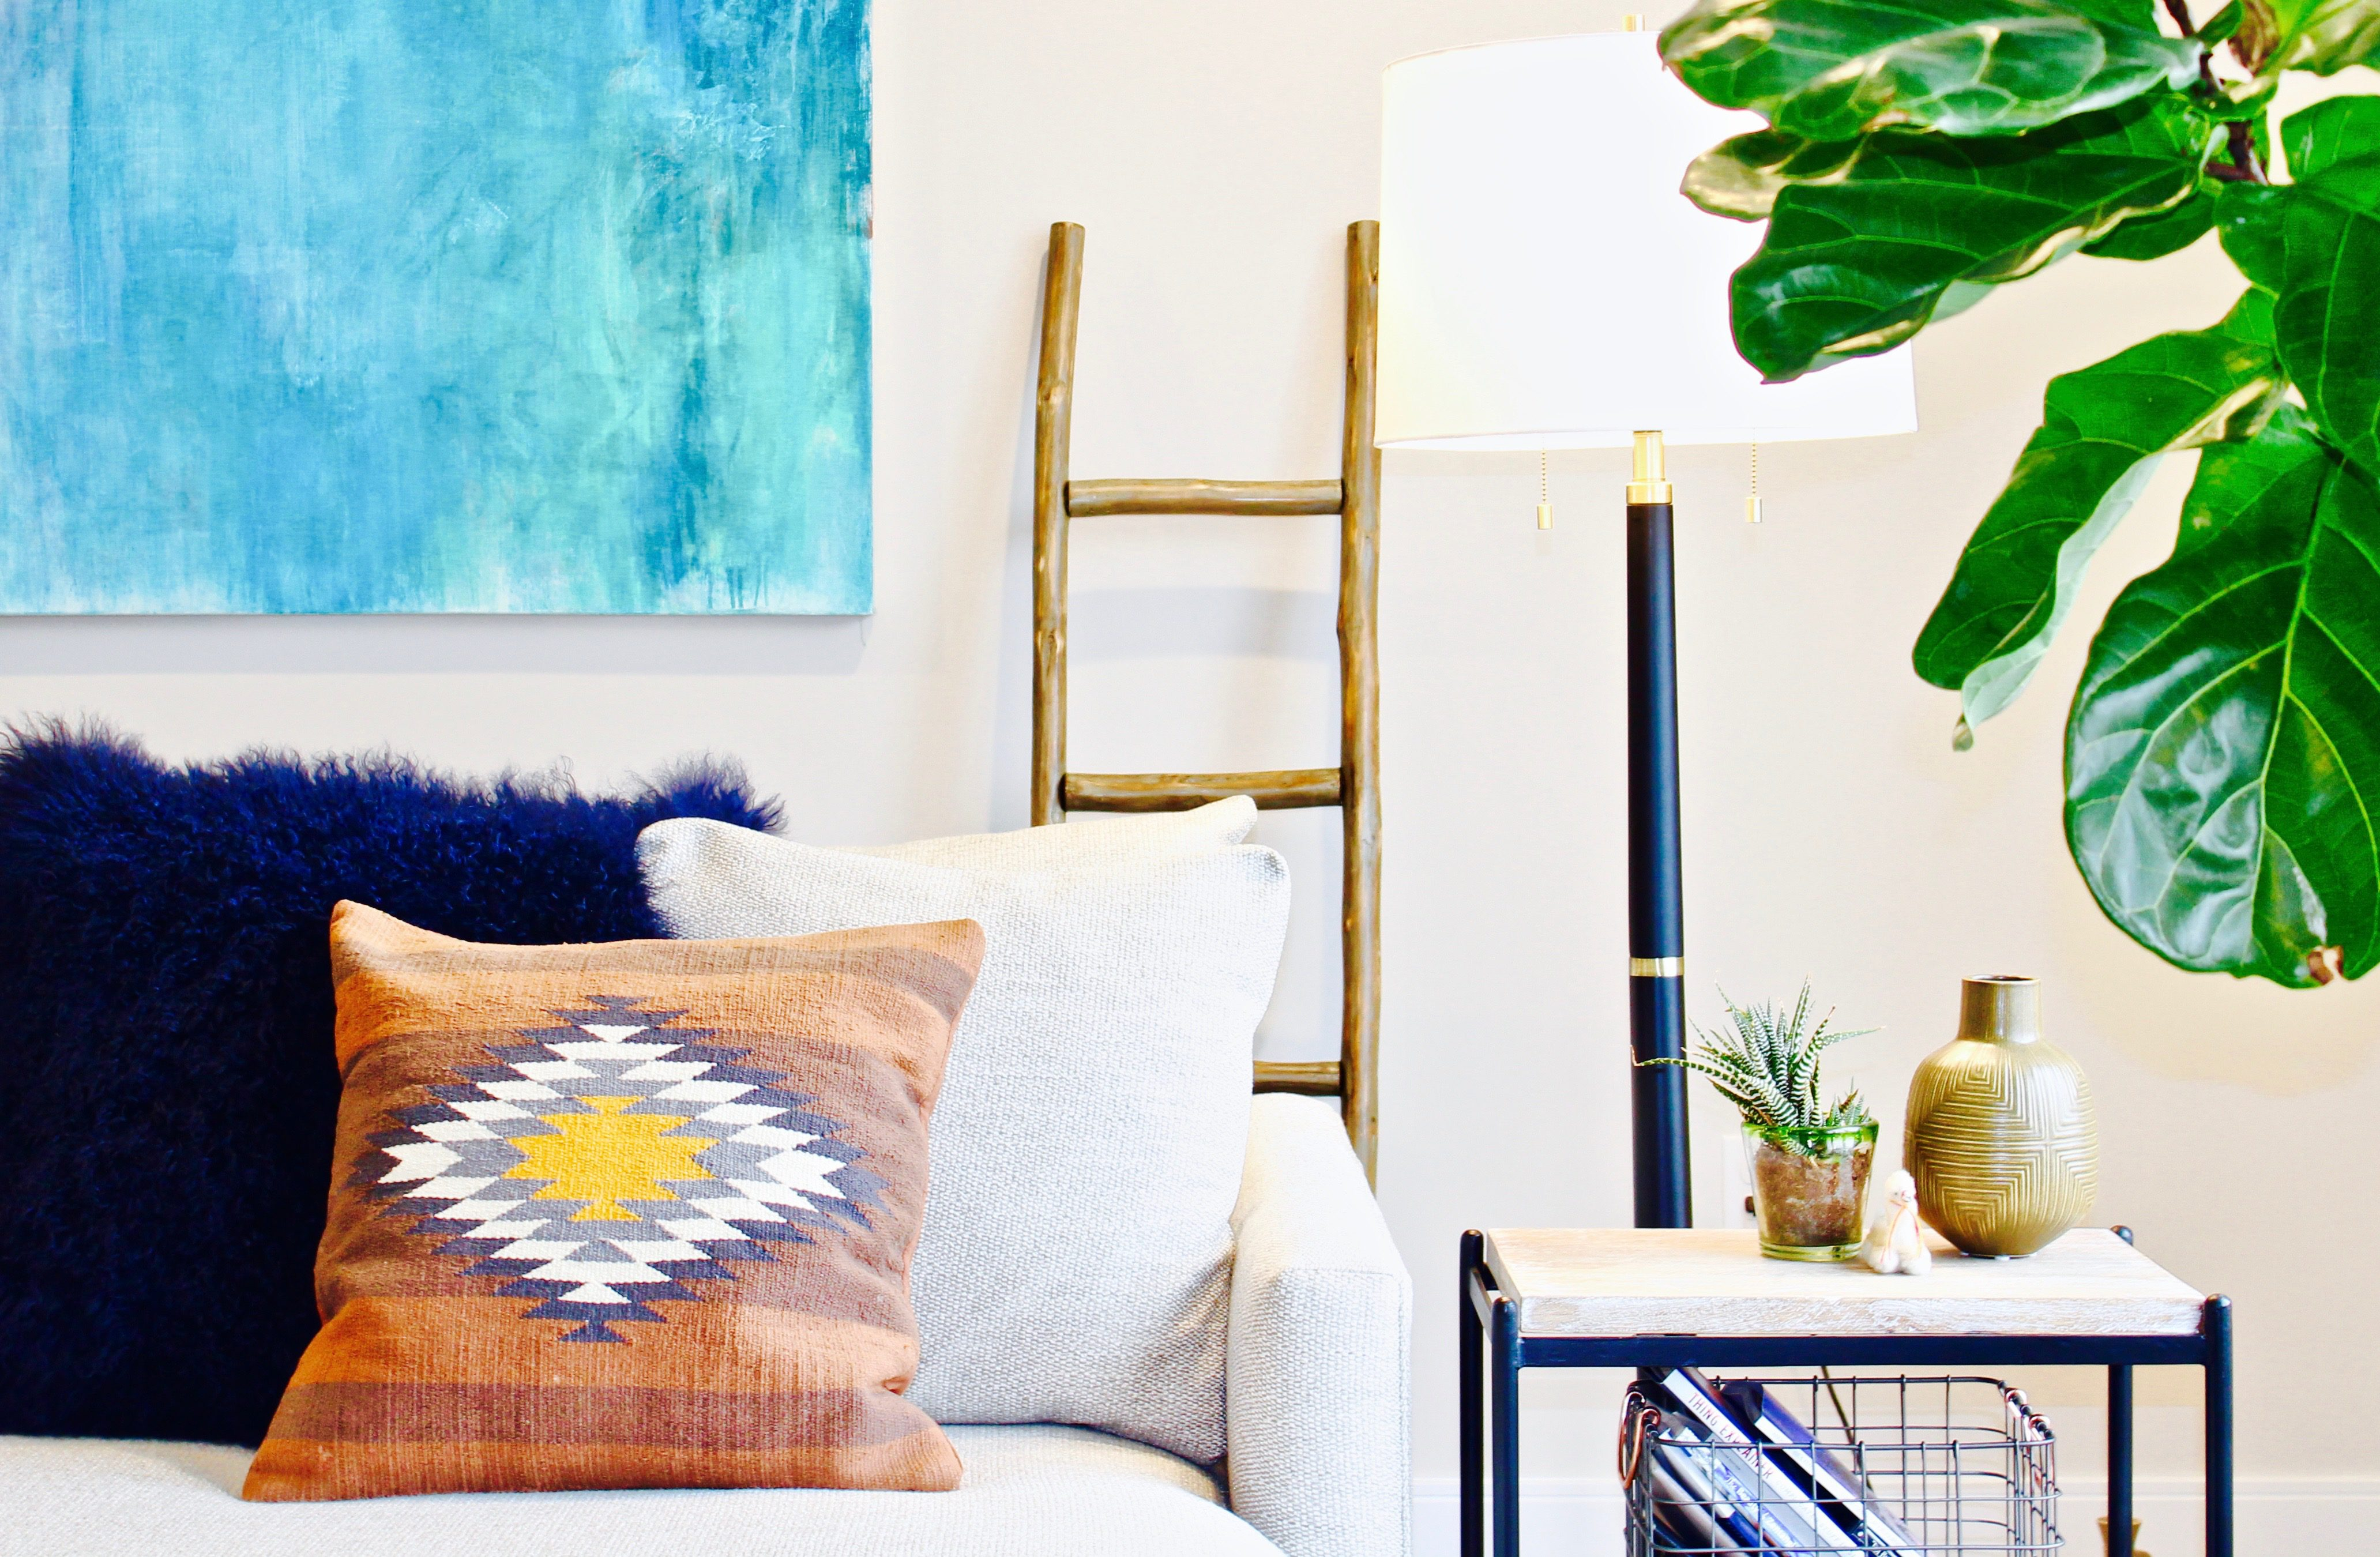 Southwestern Prints in a Modern Home | Space + Habit